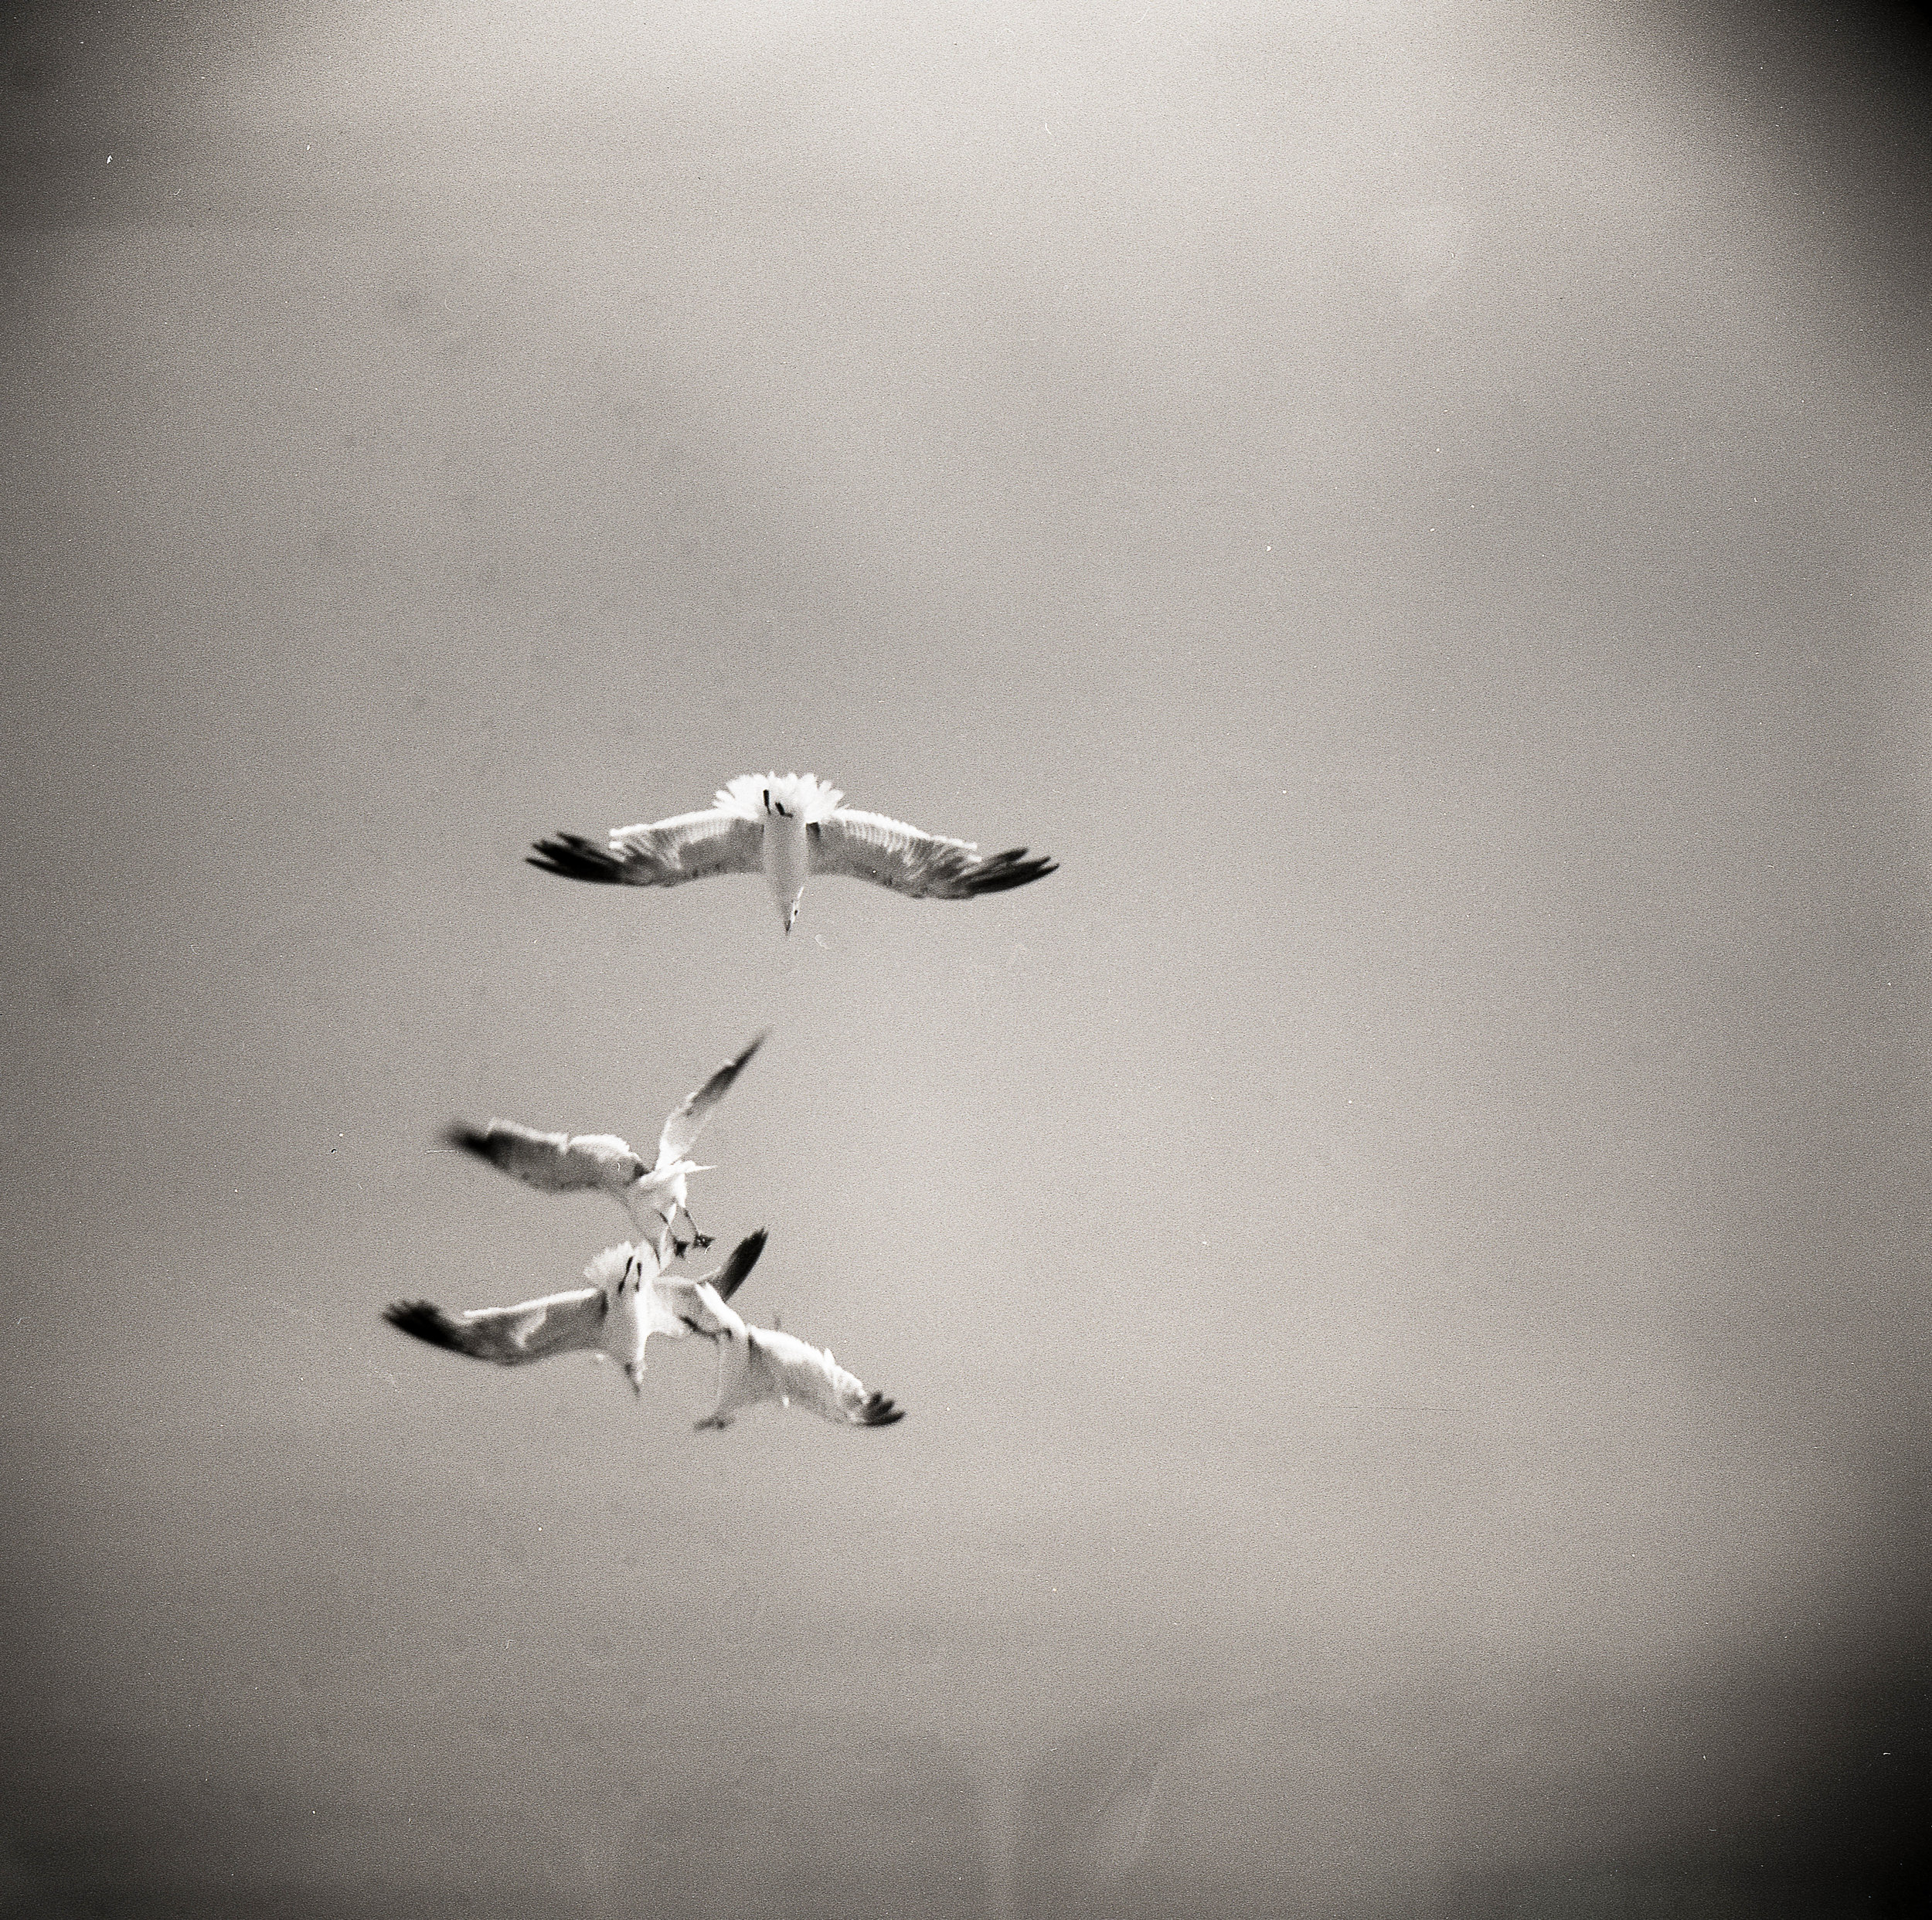 Midair battle captured on a Holga. You'll notice in these next few frames that there are some splotches. That's due to the fact that I foolishly skipped Photoflo at the end and our hard water dried on the negatives.